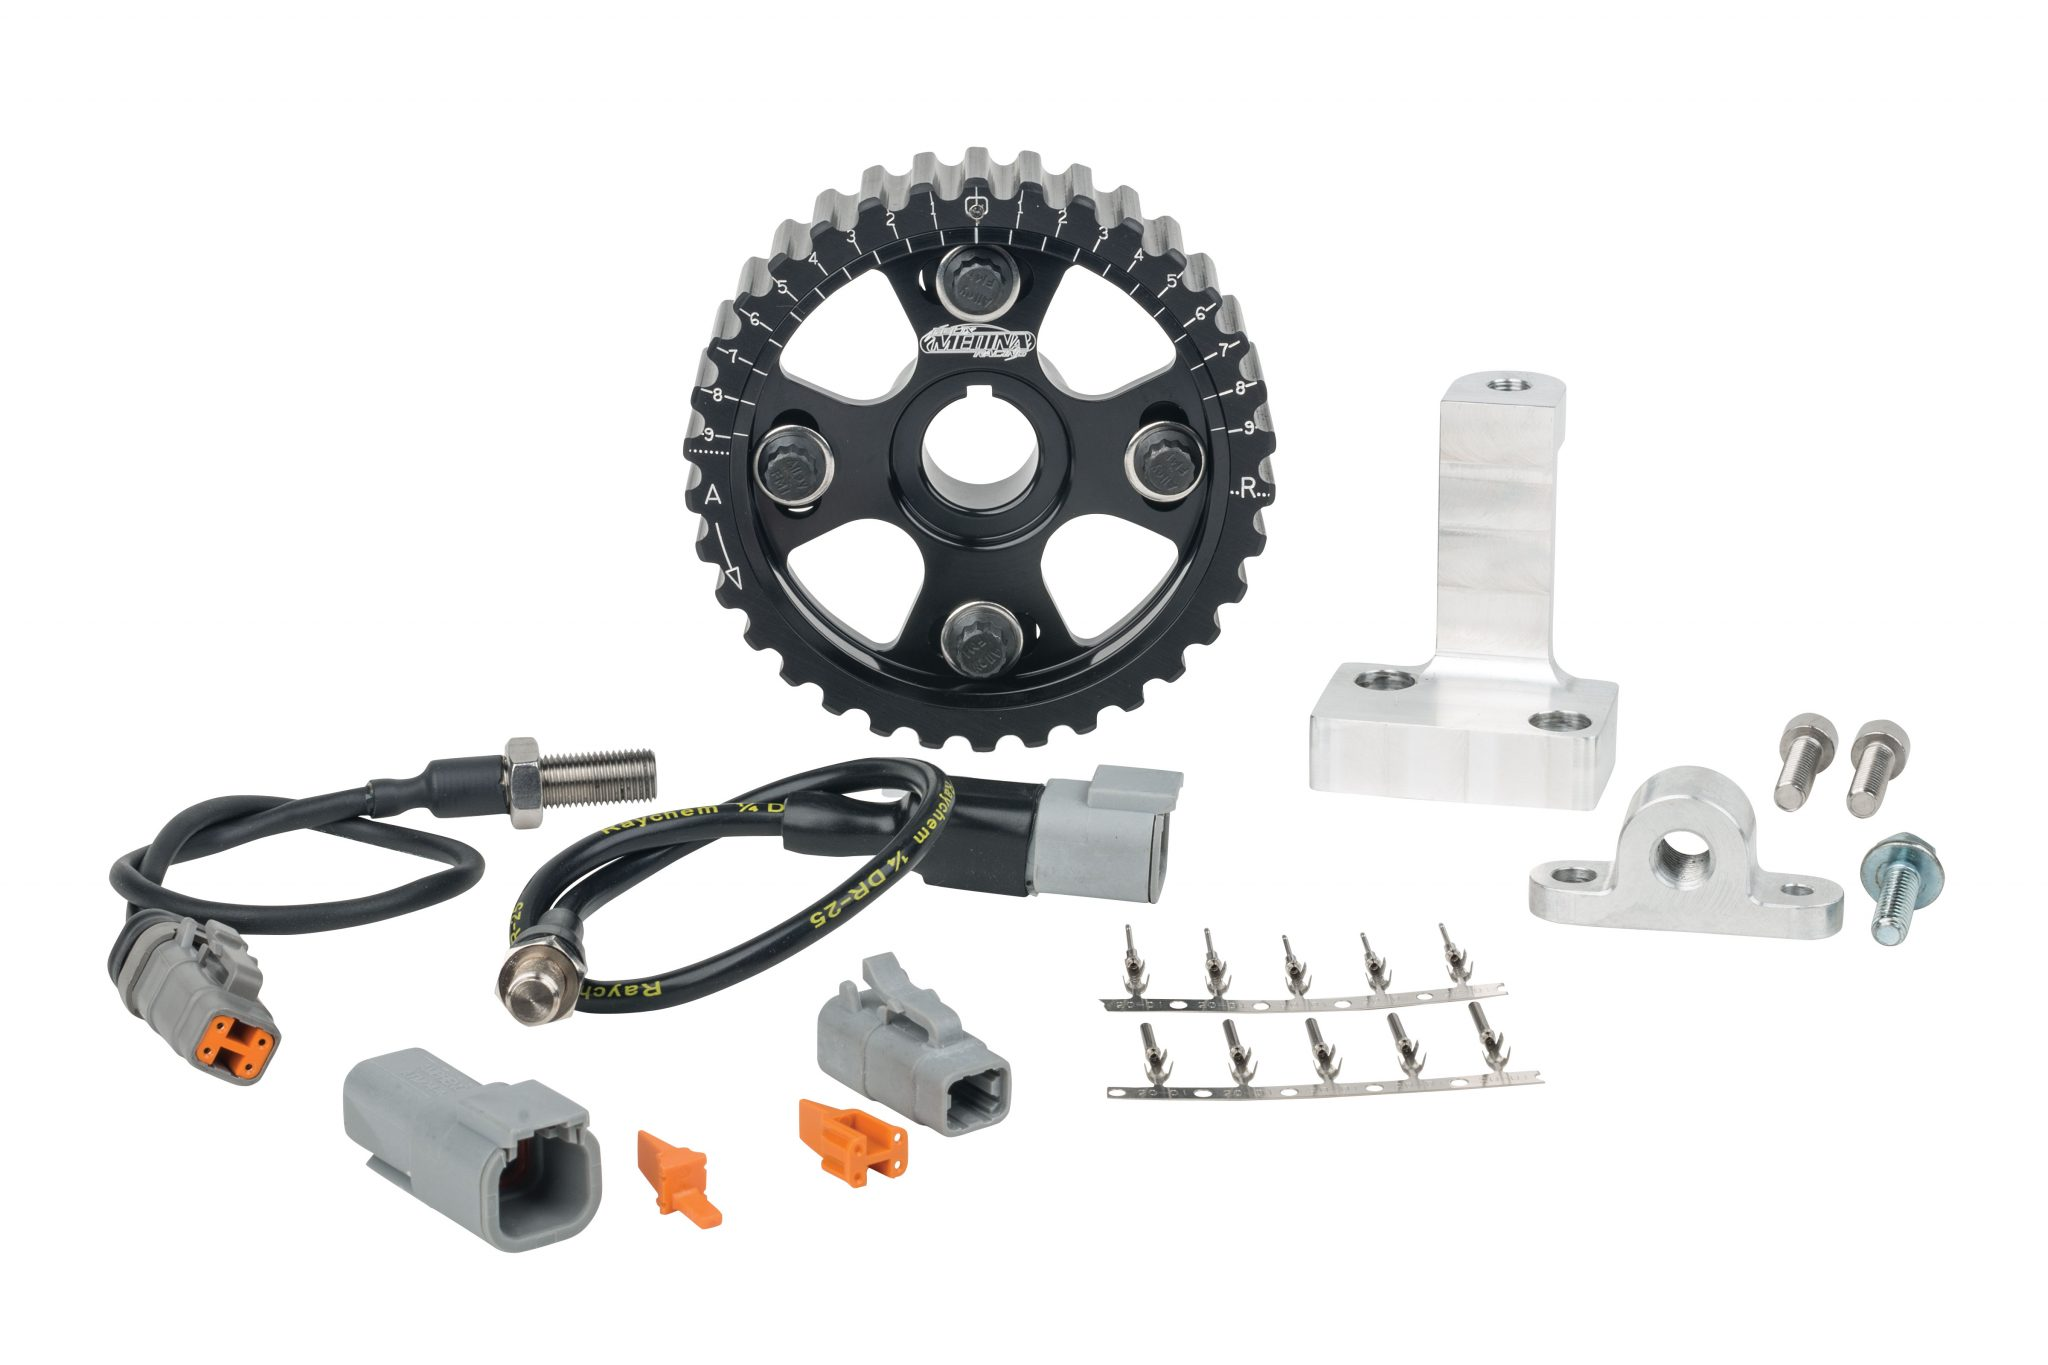 Rywire Cam trigger kit